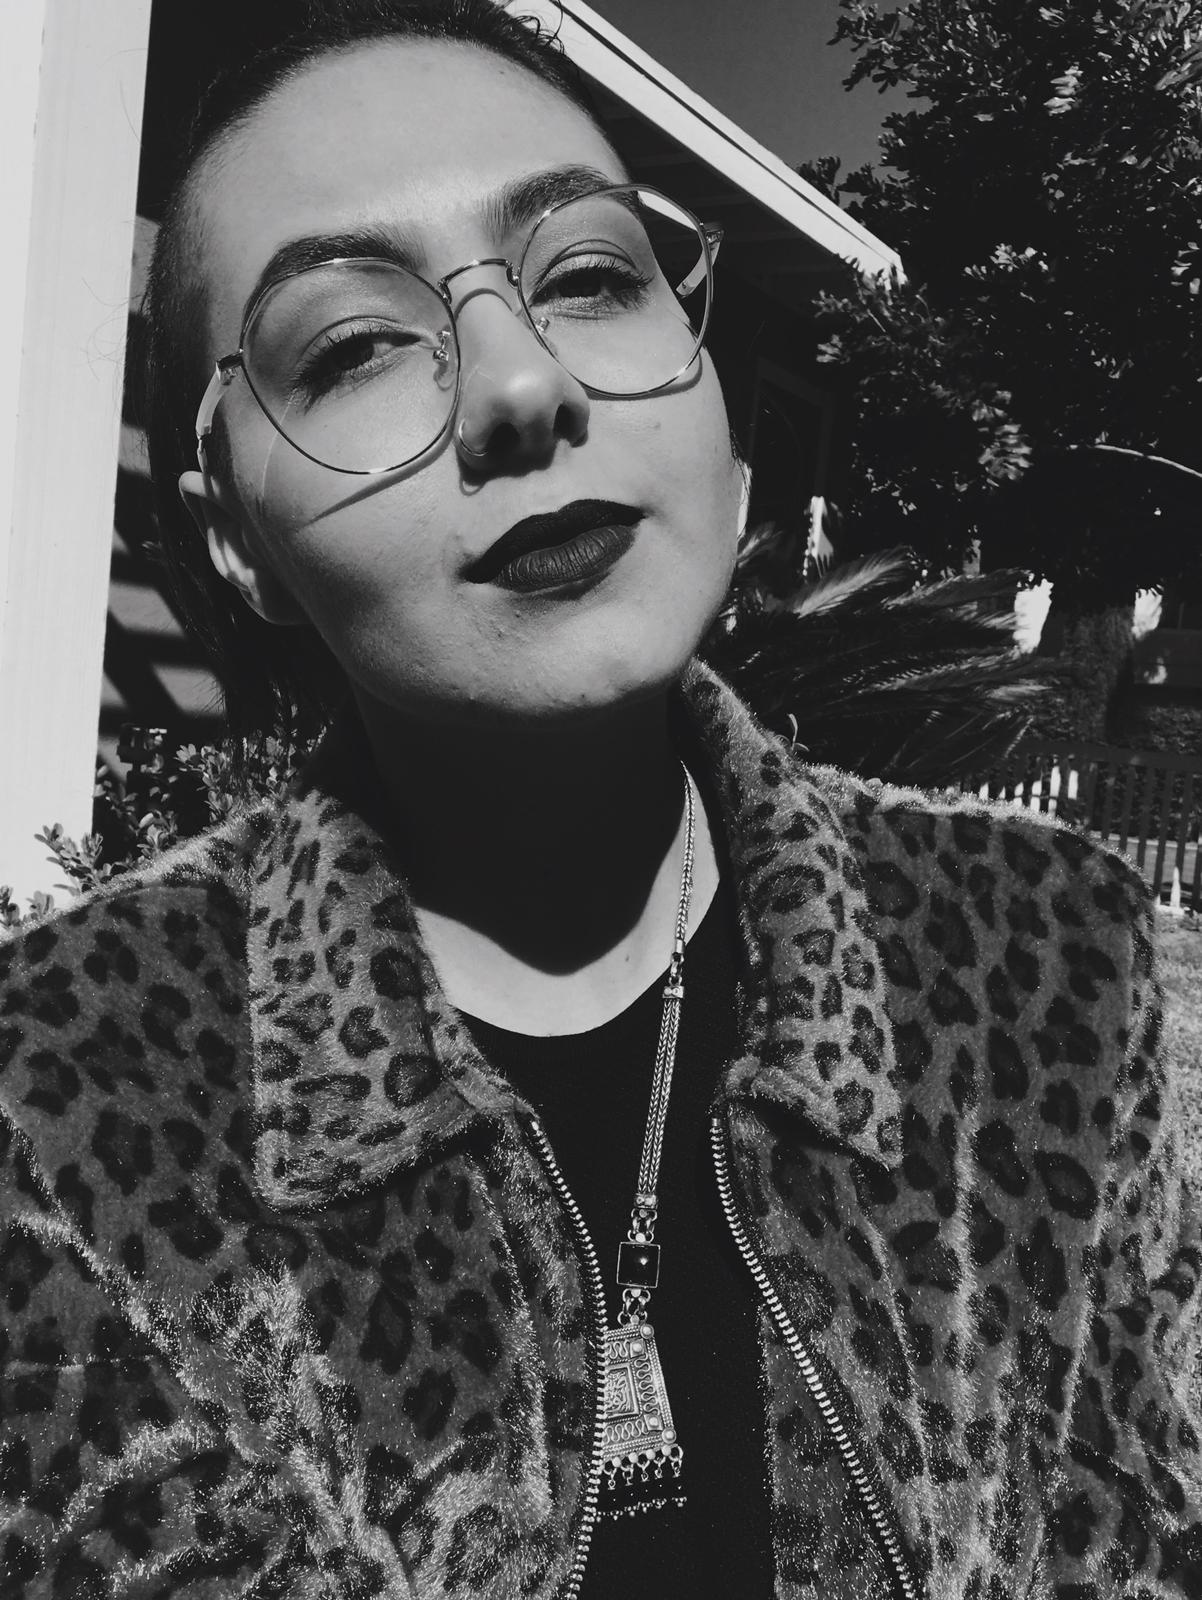 """Layla Zbinden, M.A. (They/Them) - Layla Zbinden (they/them/theirs) is a queer, nonbinary, Arab scholar/activist. They received their BA from UCSD in Psychology with a minor in Critical Gender Studies and went on to receive an M.A. in Women's Studies from San Diego State University. Layla's thesis, """"Path to Self, Path to Home: Arab Diasporic Reflections on State Violence, Authenticity, and Belonging"""" used autoethnography/ethnographic research methods and decolonial feminist methodologies as a ways to explore the multiple ways queer Arab Muslim bodies experience surveillance and cultural authenticity. Between the interpersonal/familial surveillance manifested in Arab-Muslim households and the structural surveillance enacted against bodies racialized in a post-9/11 context, they explored how the state weaponizes those forms of control and actualize a fullest self.Layla will start their PhD in American Studies and Ethnicities at the University of Southern California inshallah August 2019, where they will continue to explore the various ways that technologies of state surveillance ultimately seeks to control communities of color, and what this means for the futures of activism and liberatory potentials of technologies of the state. Their desire to crip and queer the very technologies that surveil, murder, and disappear Arabs, Muslims, Black, Indigenous and other communities' stems from a deep investment in decolonial feminist, queer of color, and disability studies frameworks. Methodologies – the frameworks of how and why we create the knowledge that we do, of which knowledges we uphold and why–is an integral component to Layla's academic writing and the work they do. They seek to push past conventional understandings of what can and cannot count as academic writing, often integrating raw prose and tapping into visceral affective responses as modes of learning, and unlearning. Layla's work, their pedagogy and the essence of their projects (academicpersonalpolitical, as t"""